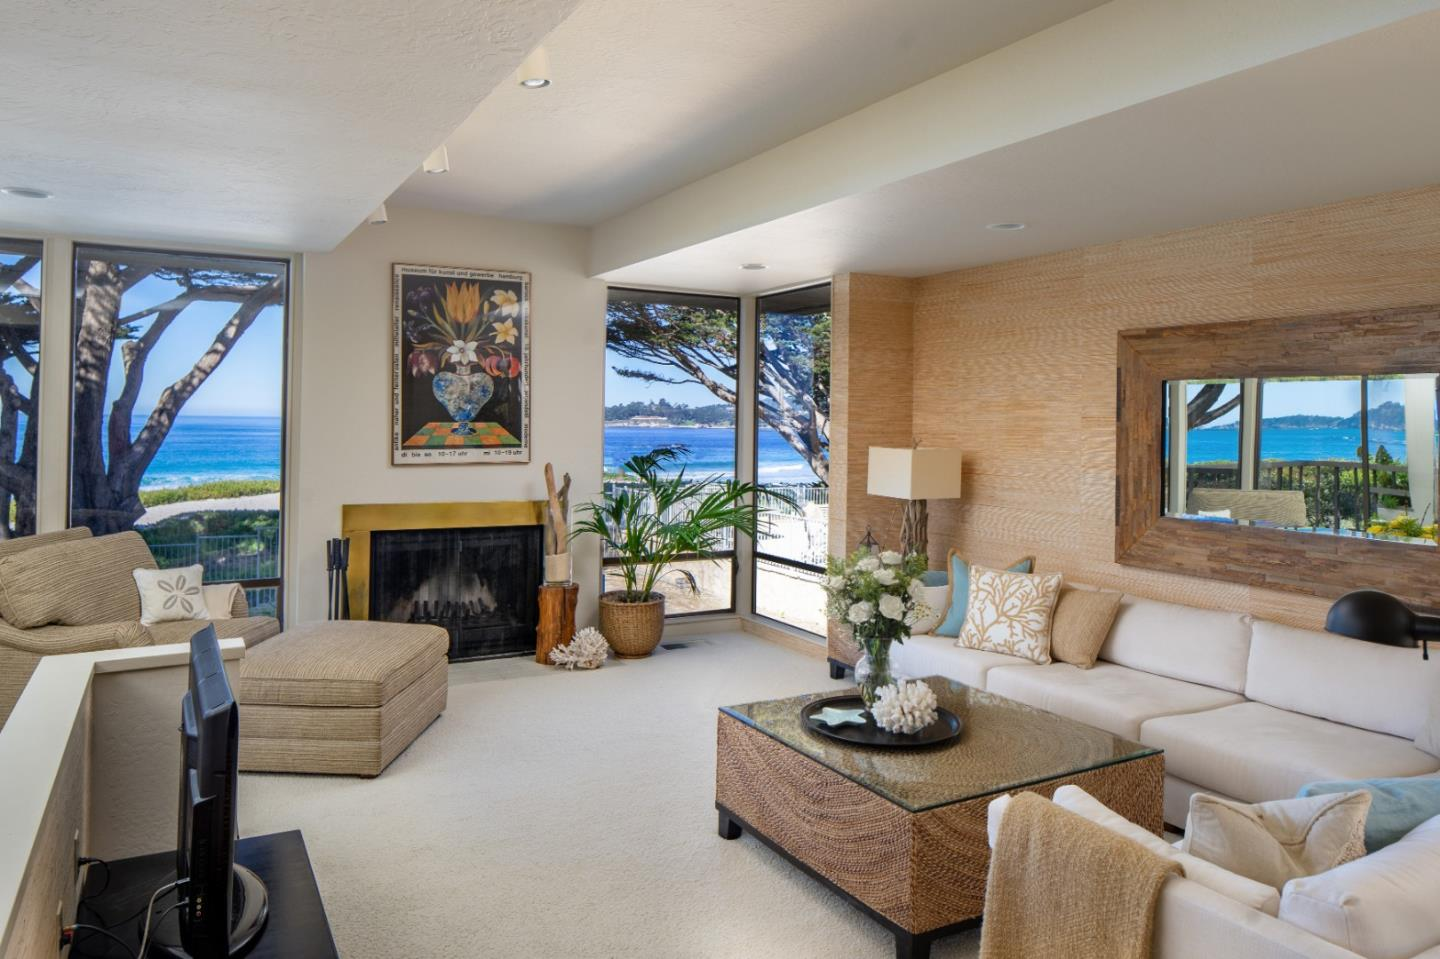 0 Del Mar 5 SE of Ocean, CARMEL, California 93921, 3 Bedrooms Bedrooms, ,2 BathroomsBathrooms,Residential,For Sale,0 Del Mar 5 SE of Ocean,ML81743218